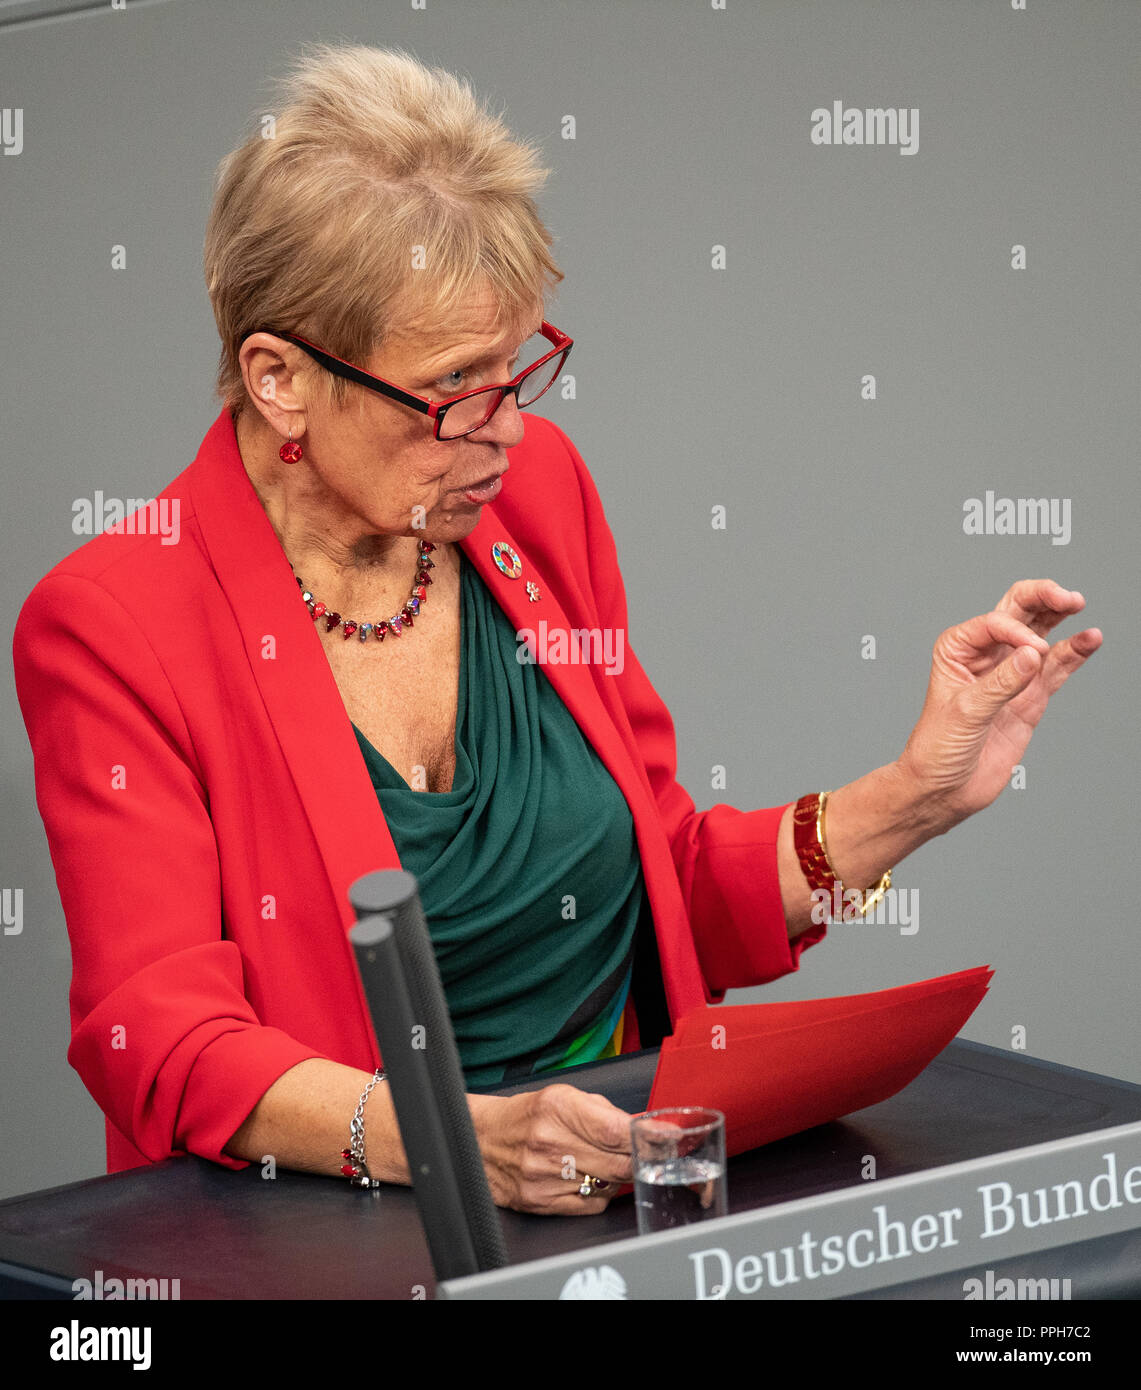 26 September 2018, Berlin: Ulli Nissen (SPD), member of the Bundestag, speaks during a session of the Bundestag on the results of the housing summit in Berlin. Photo: Fabian Sommer/dpa - Stock Image